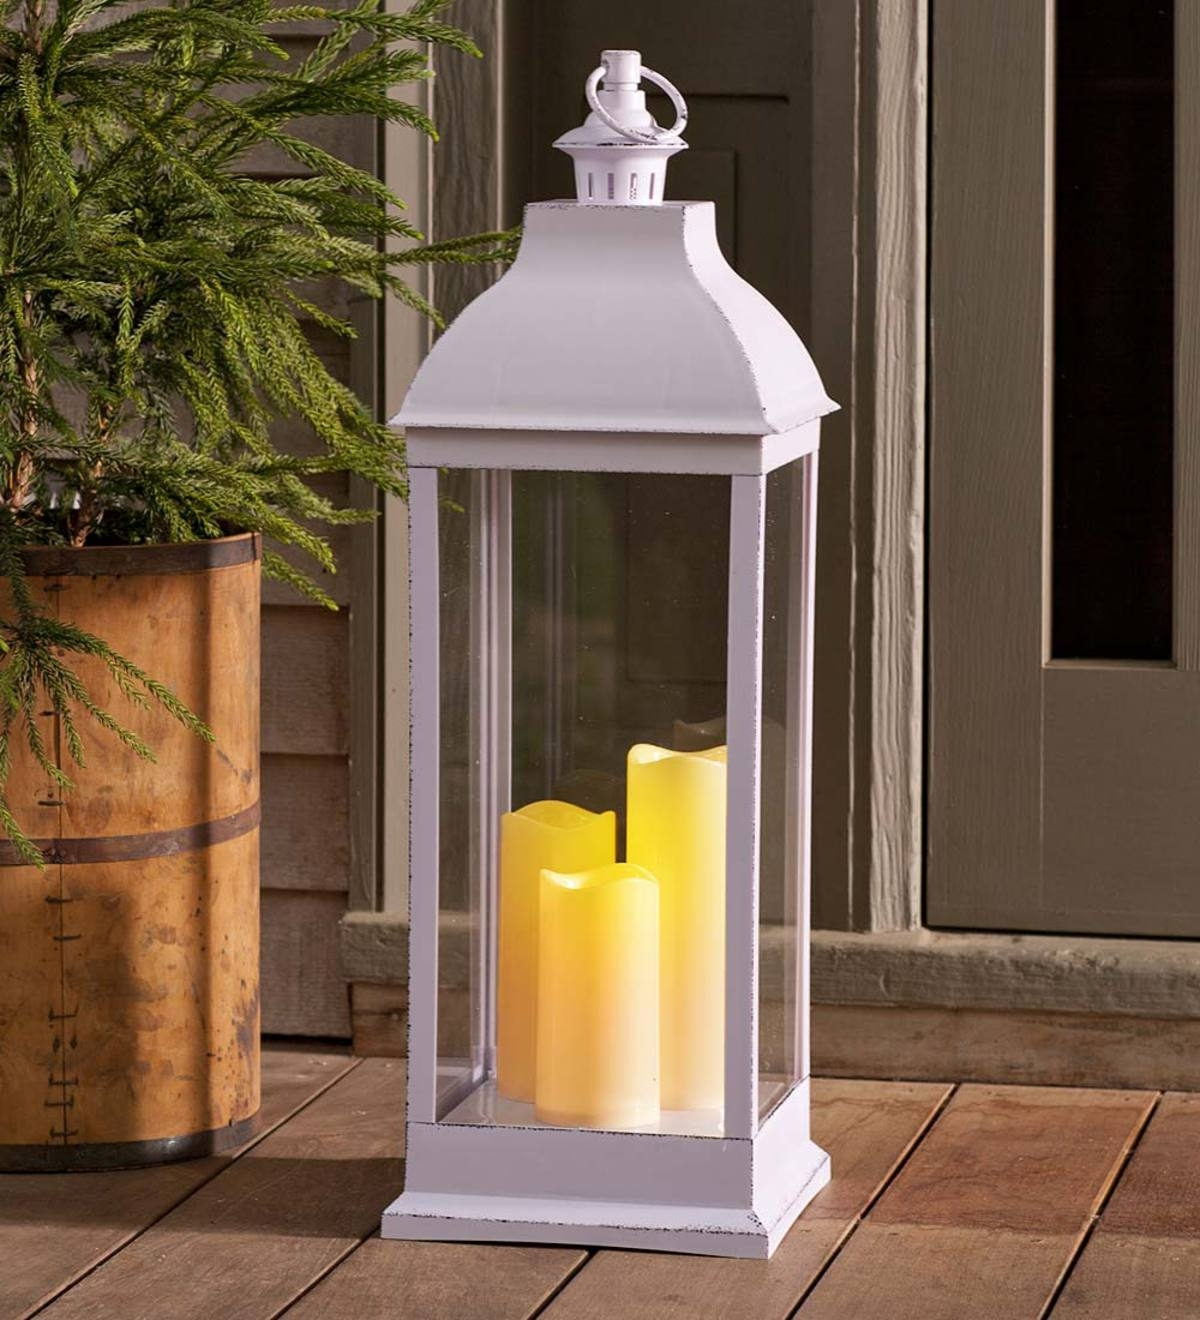 Plowhearth Pertaining To Latest Resin Outdoor Lanterns (View 20 of 20)